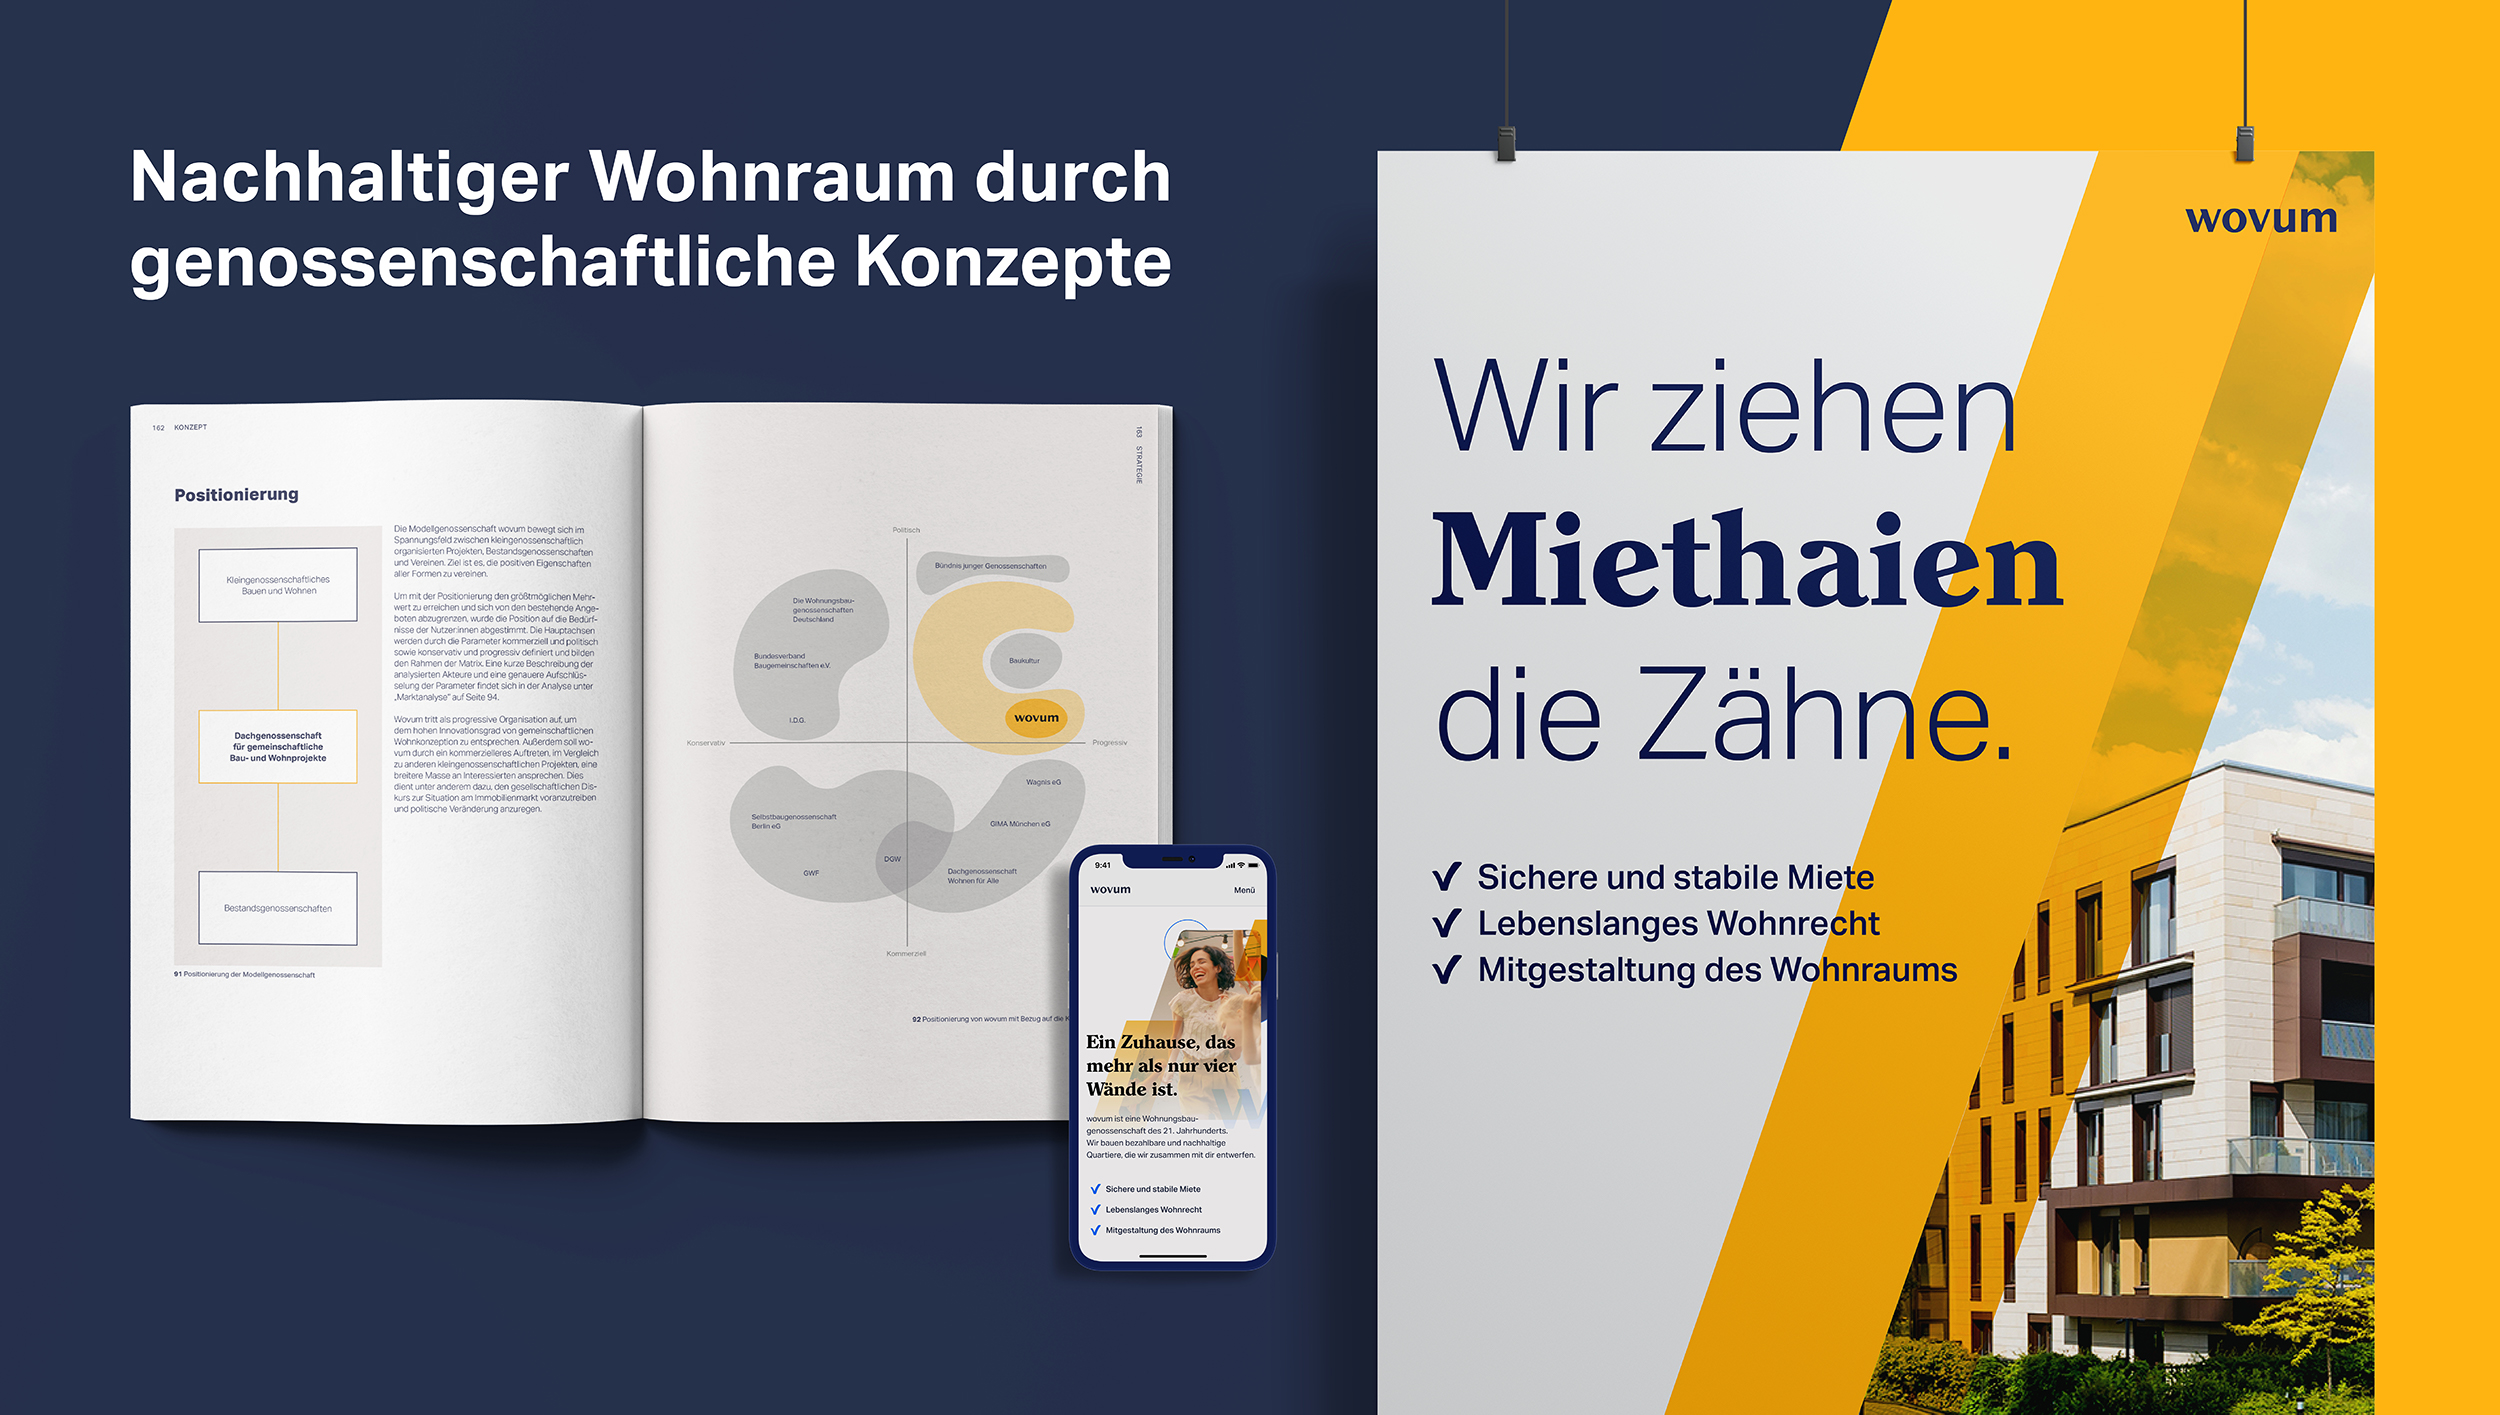 The key visual shows a flatlay of the printed documentation, a mobile view of the wovum landing page as well as a hanging poster mockup.